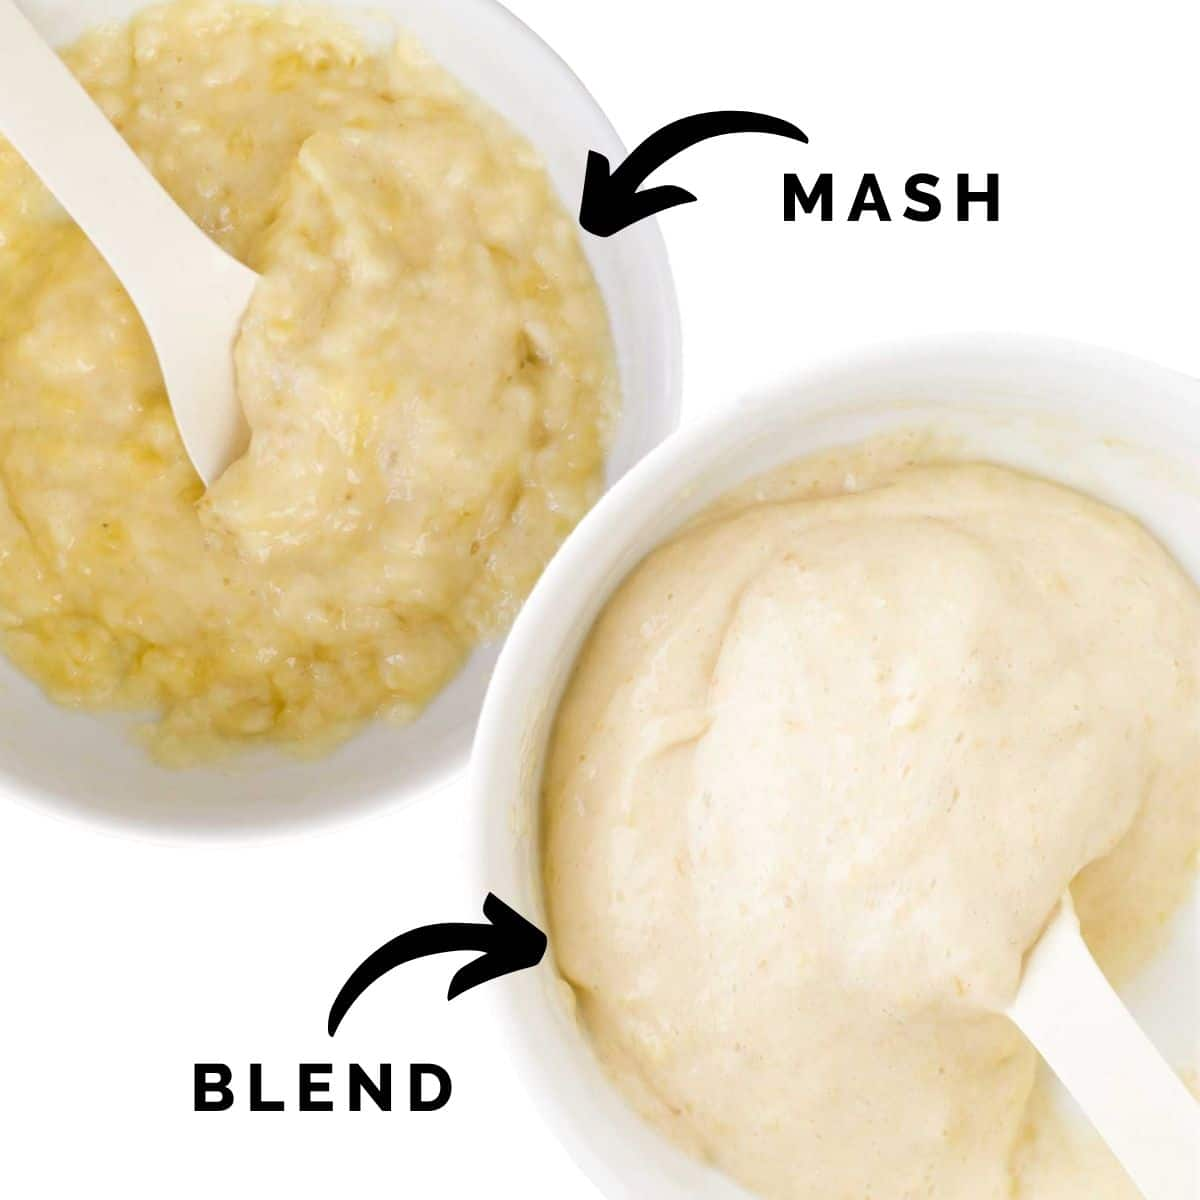 Image Showing Two Plates of Banana (One Pureed and the Other Mashed)